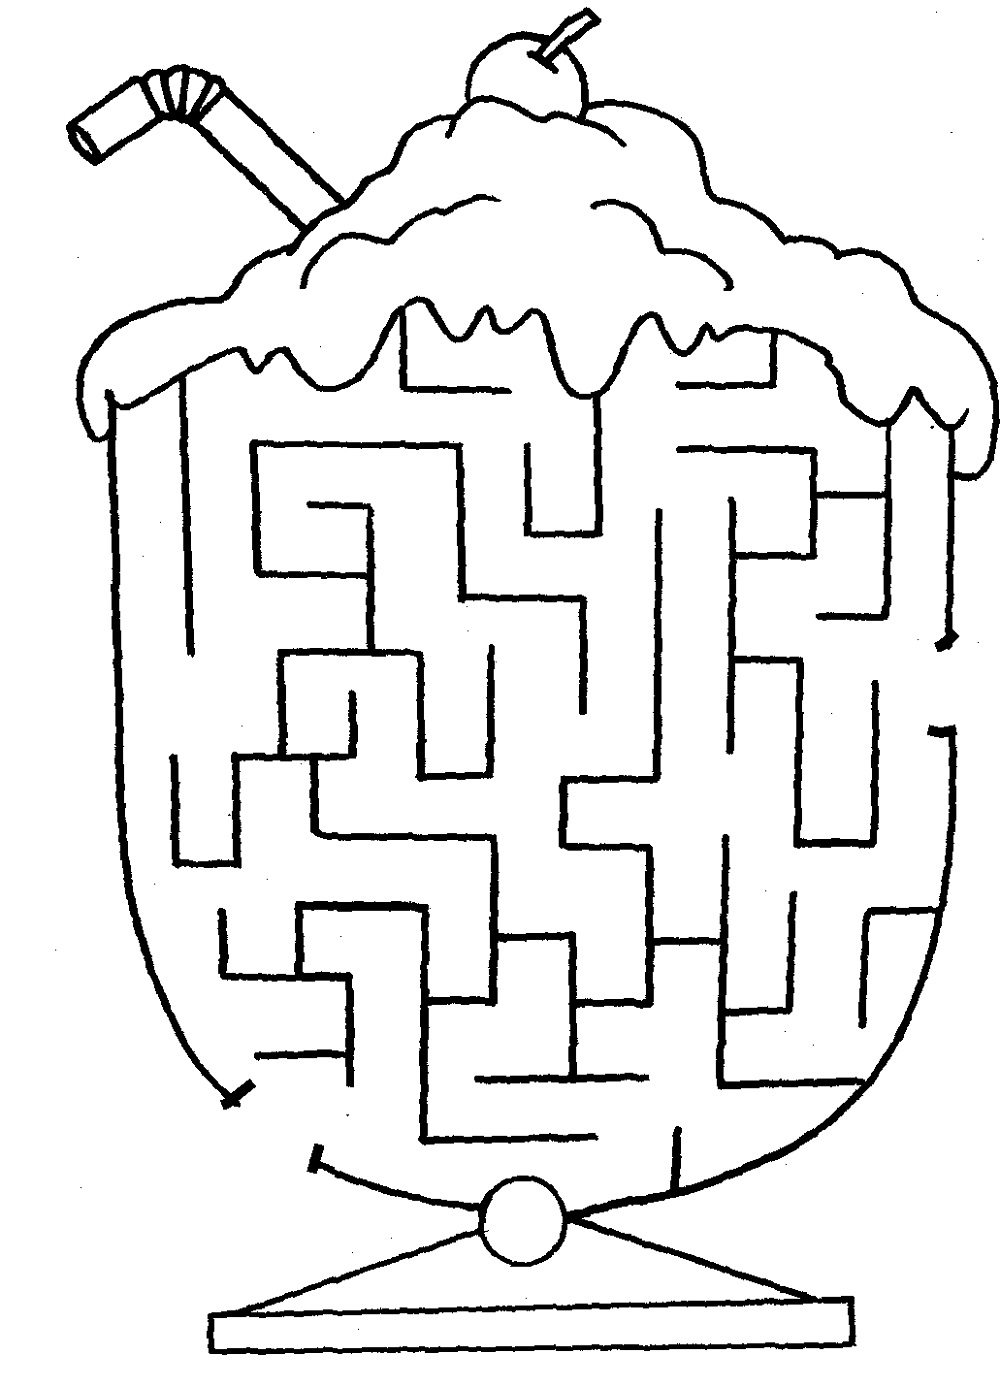 Mazes for Children Worksheets